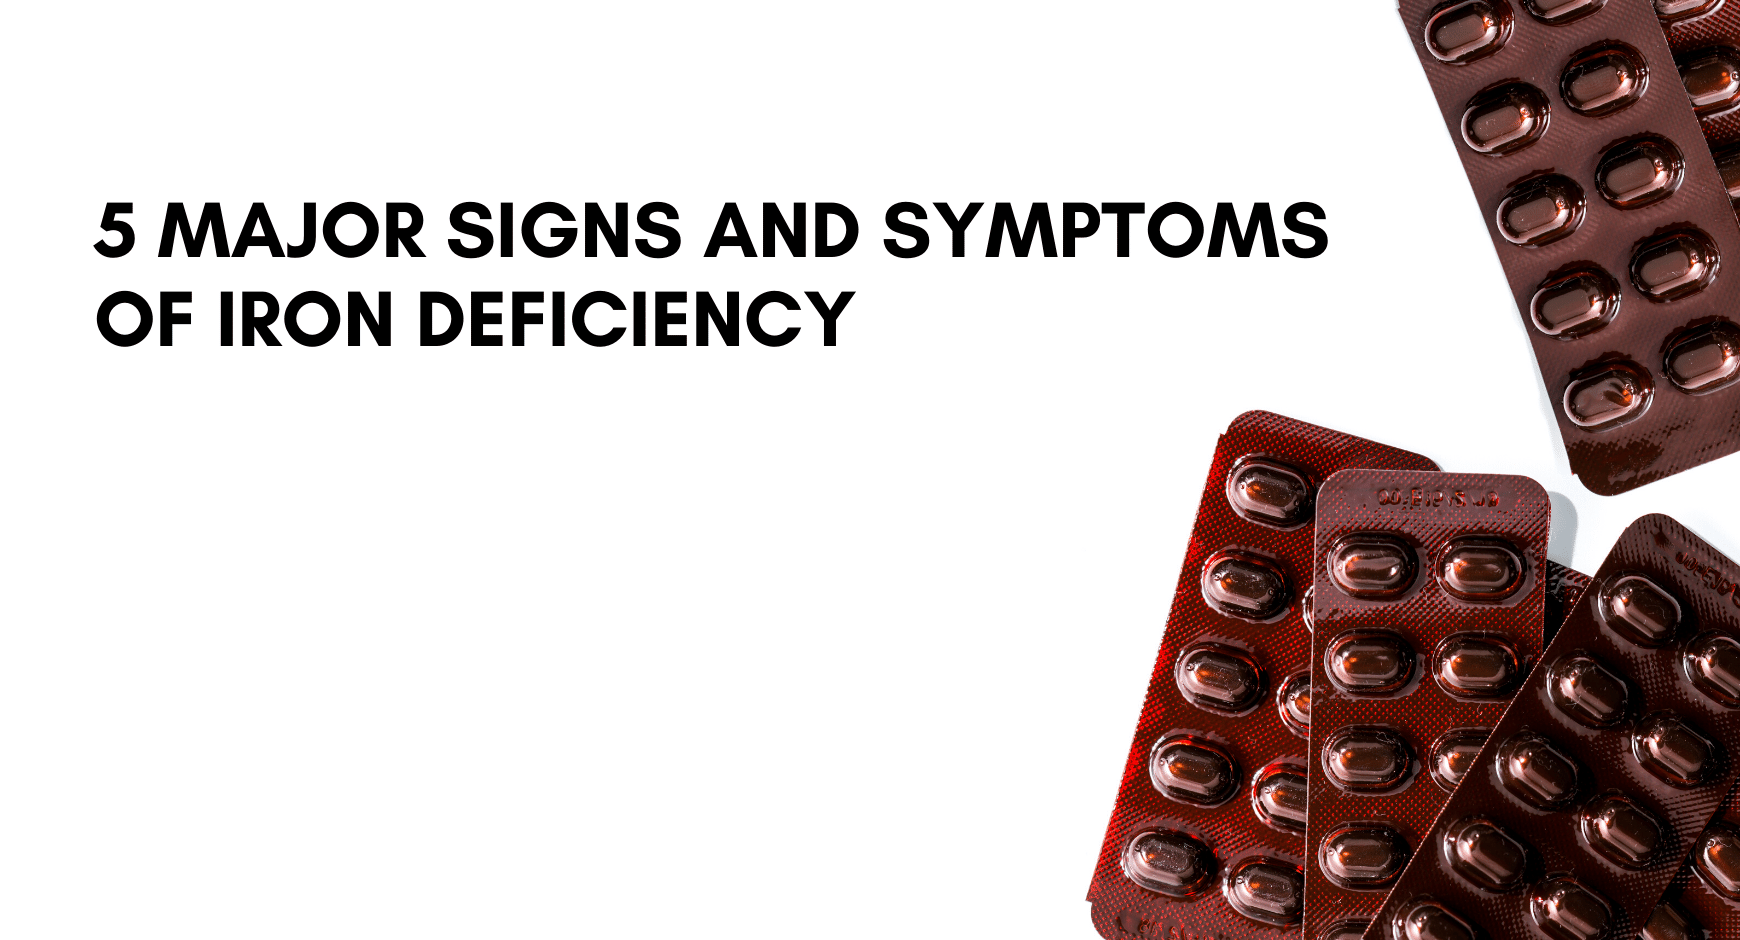 5 major signs and symptoms of iron deficiency